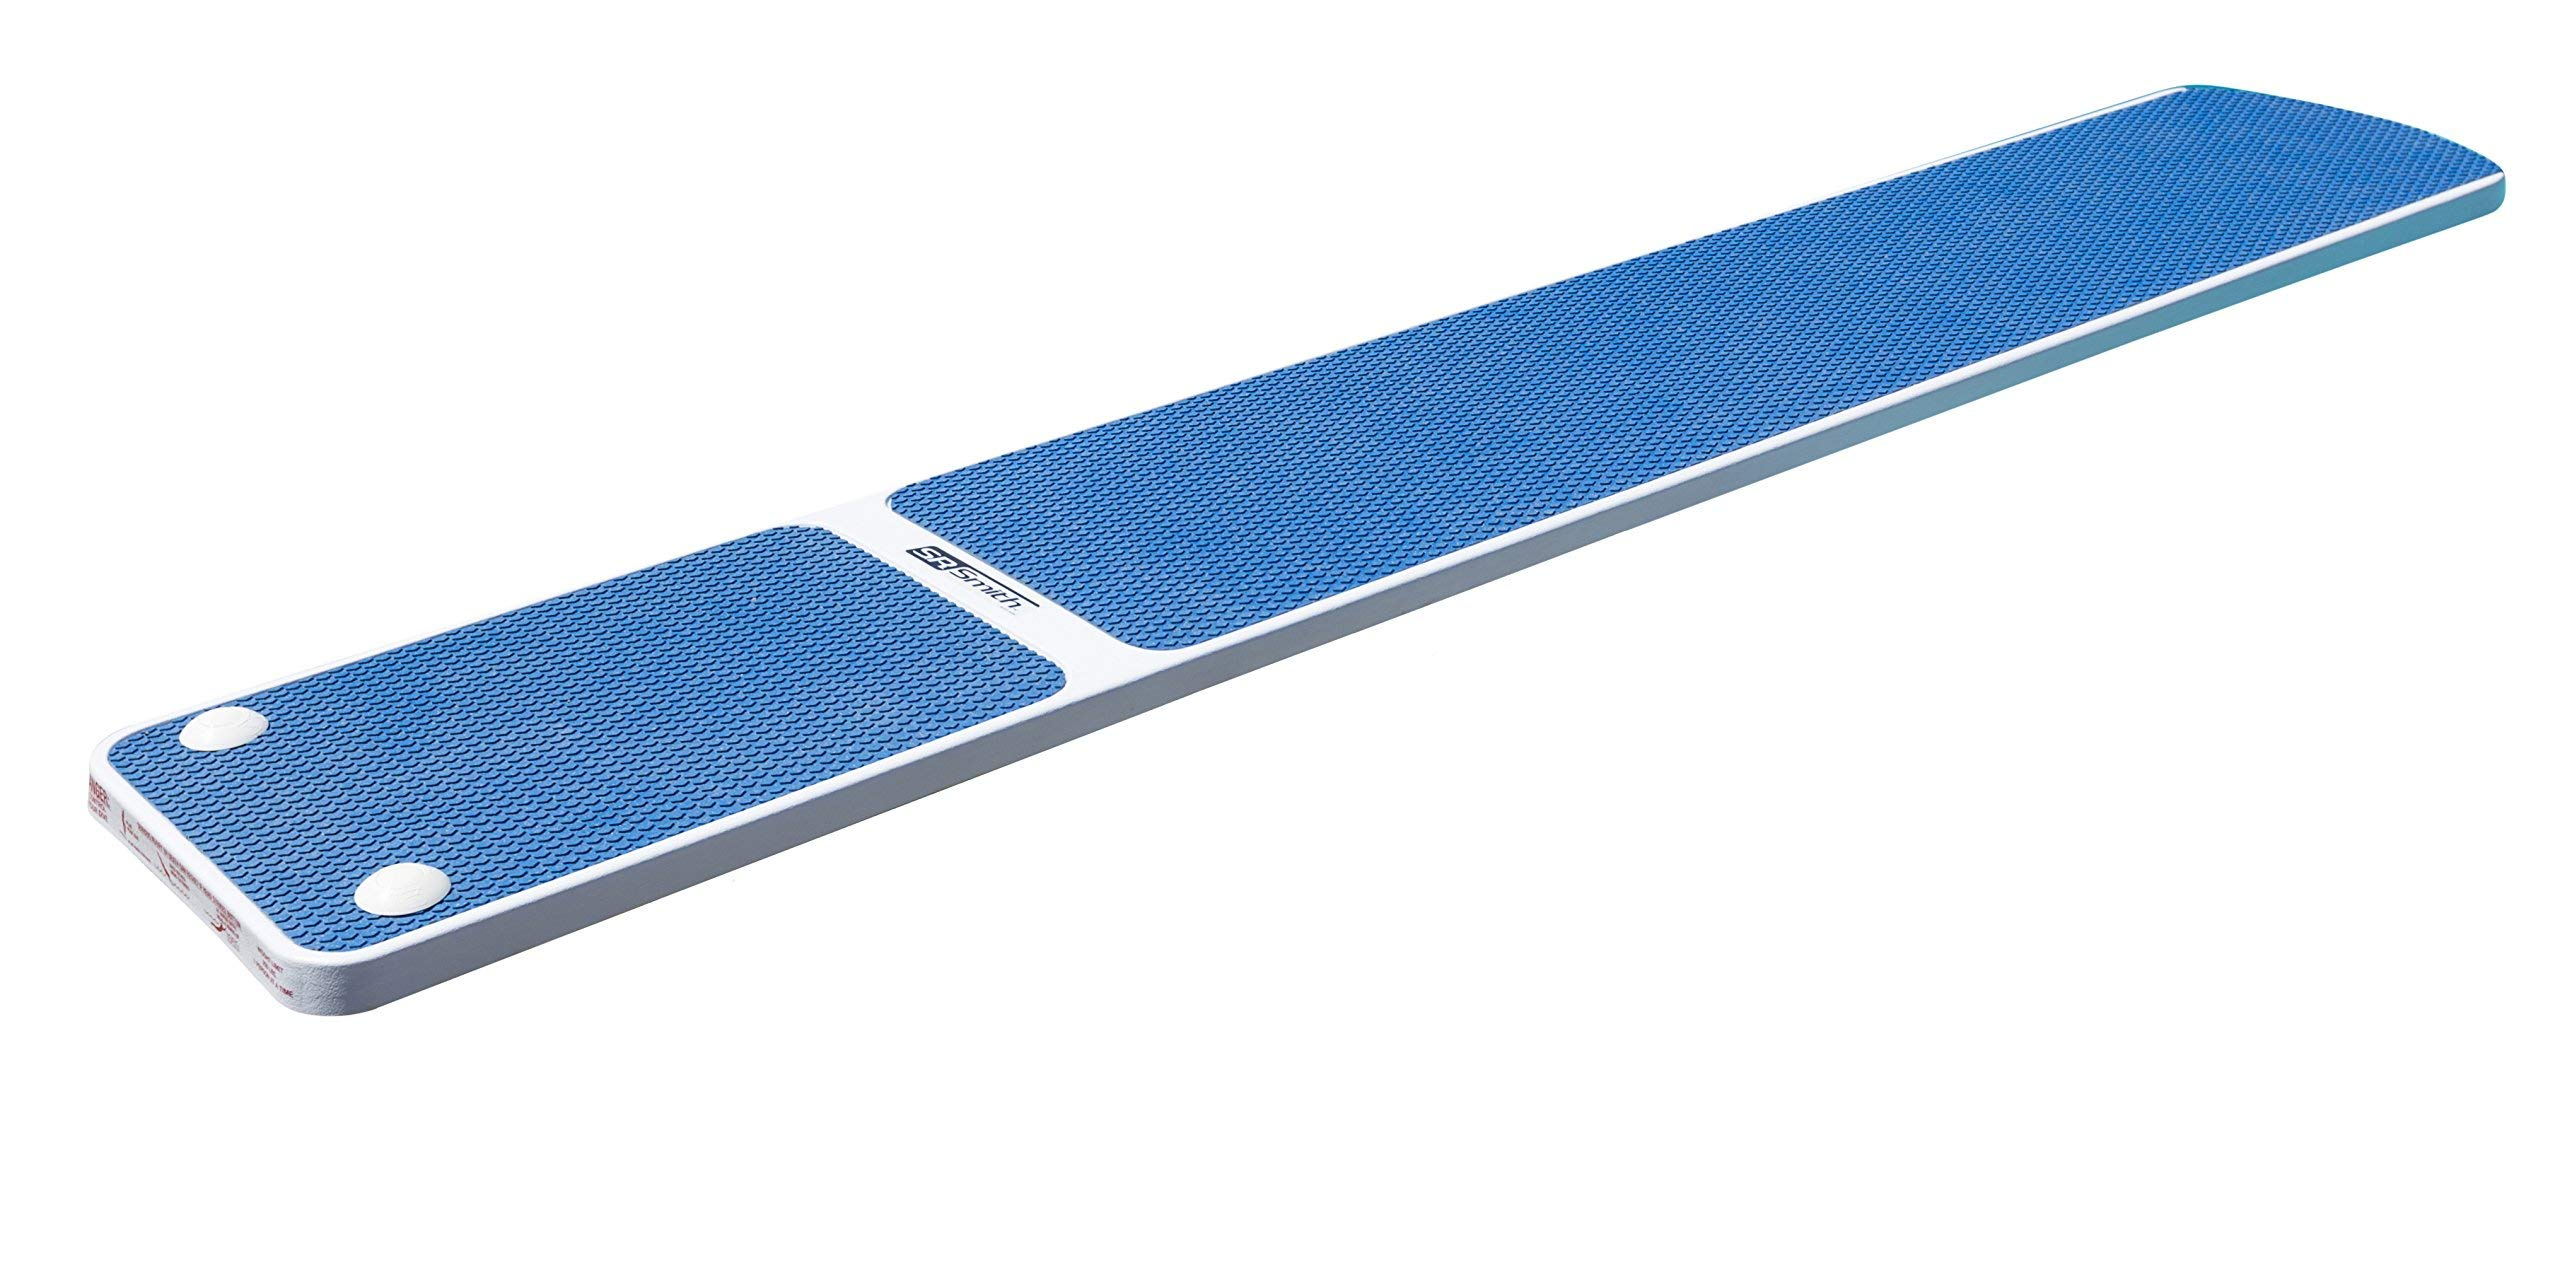 S.R. Smith 66-209-578S2B Truetread Diving Board, 8-Foot, Radiant White with Blue (Renewed) by S.R. Smith